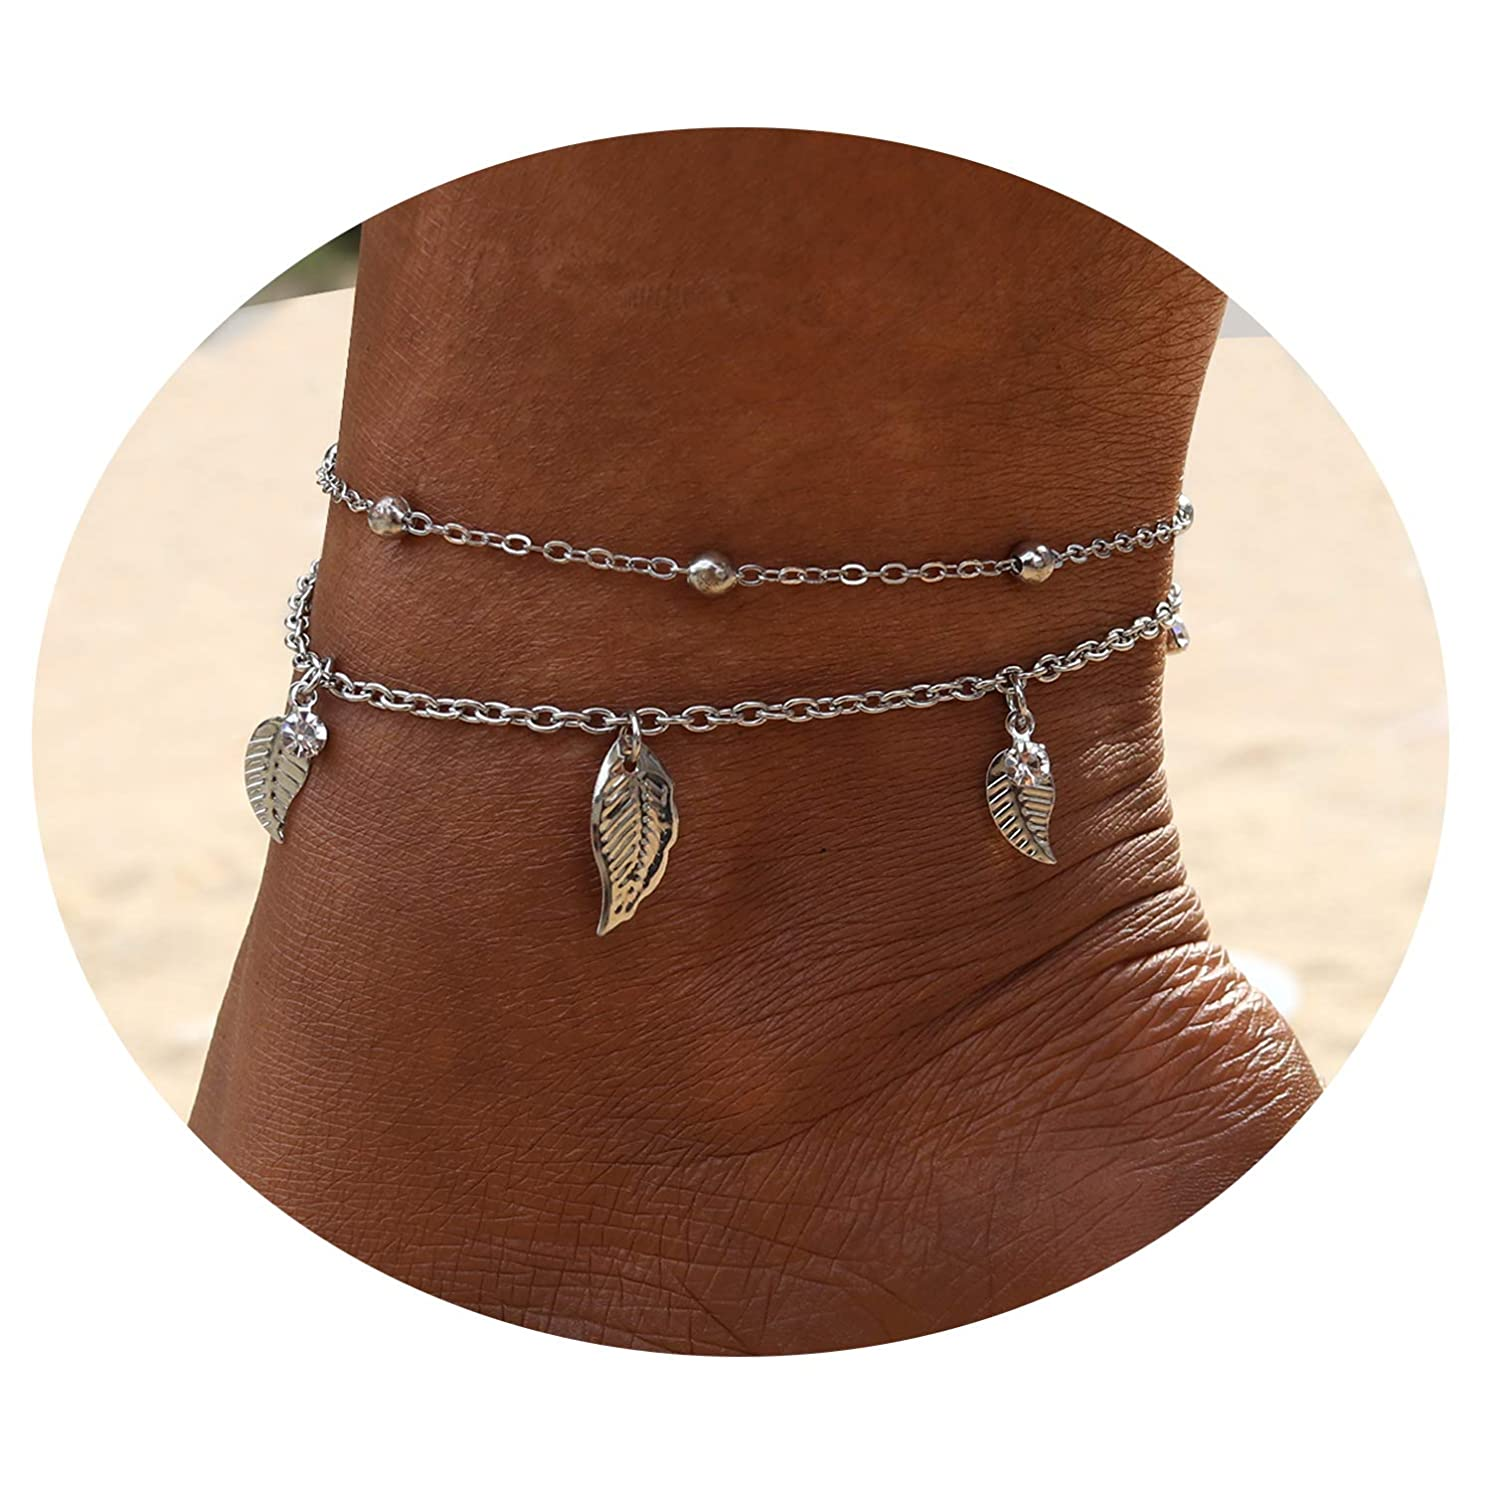 Eivanc Multilayer Metal Anklet Crystal Shell Adjustable Turtle Tassel Tree of Life Anklet Beads Sea Handmade Layered Boho Anklet Foot Jewelry Gold Chain Anklet Heart Beach Anklet for Women